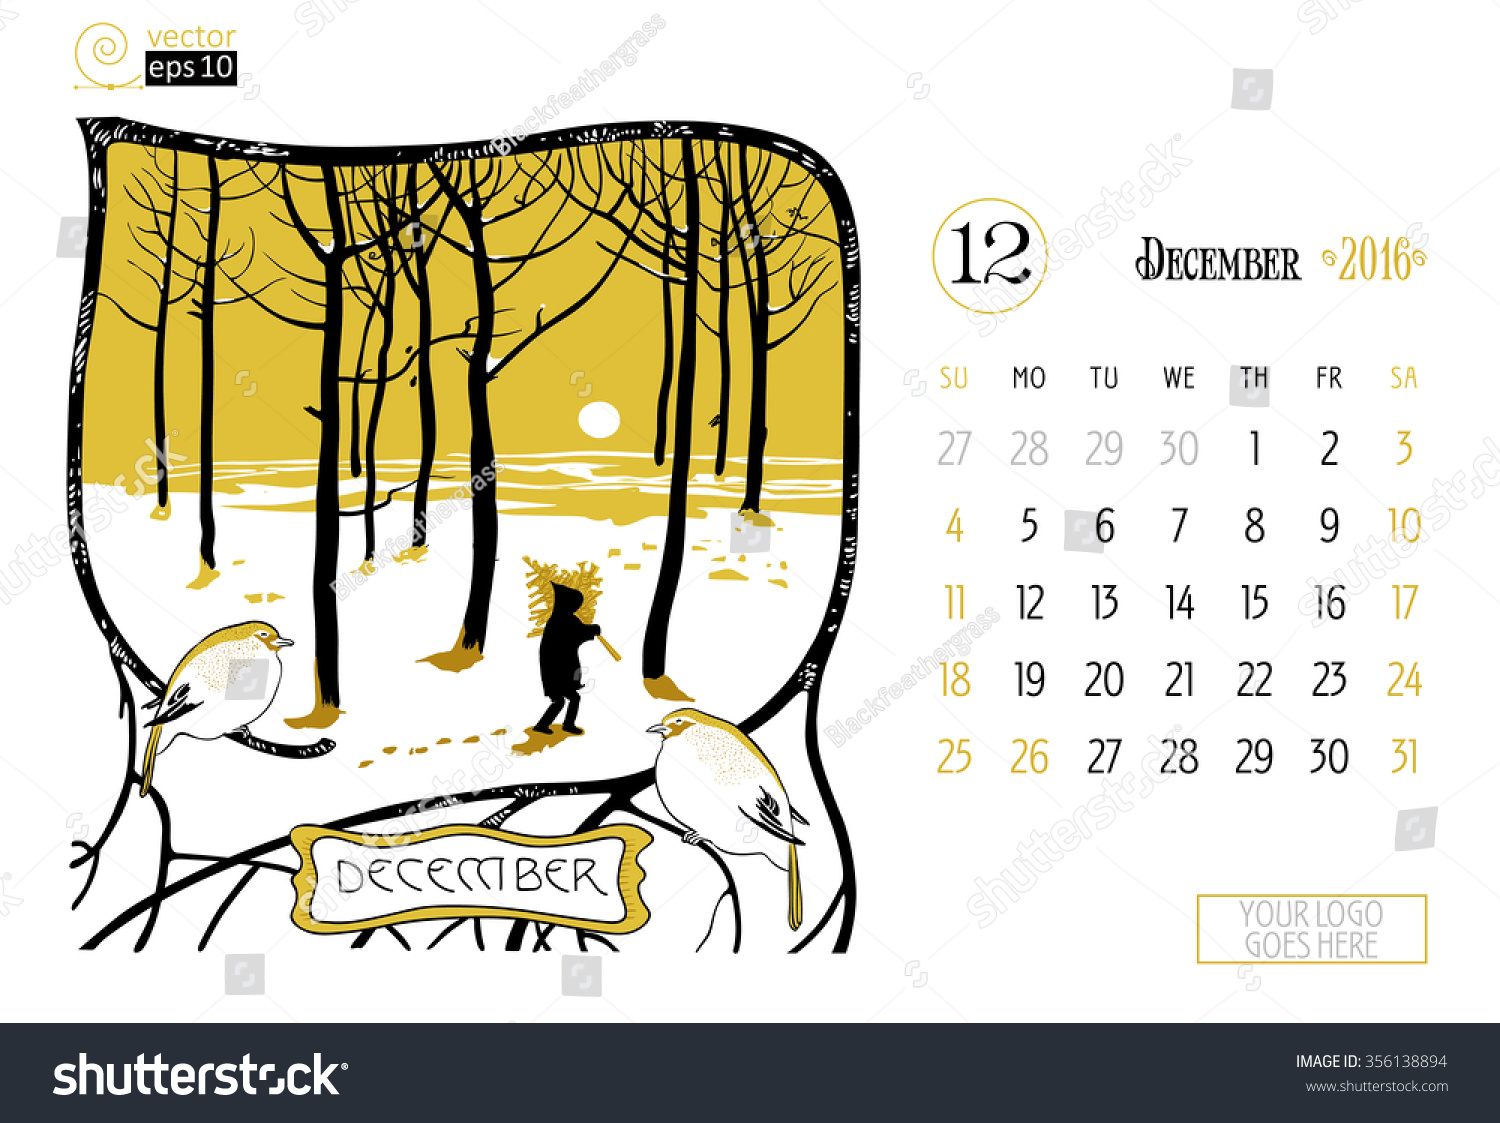 December Calendar Art : Vector concept calendar page on december stock vector royalty